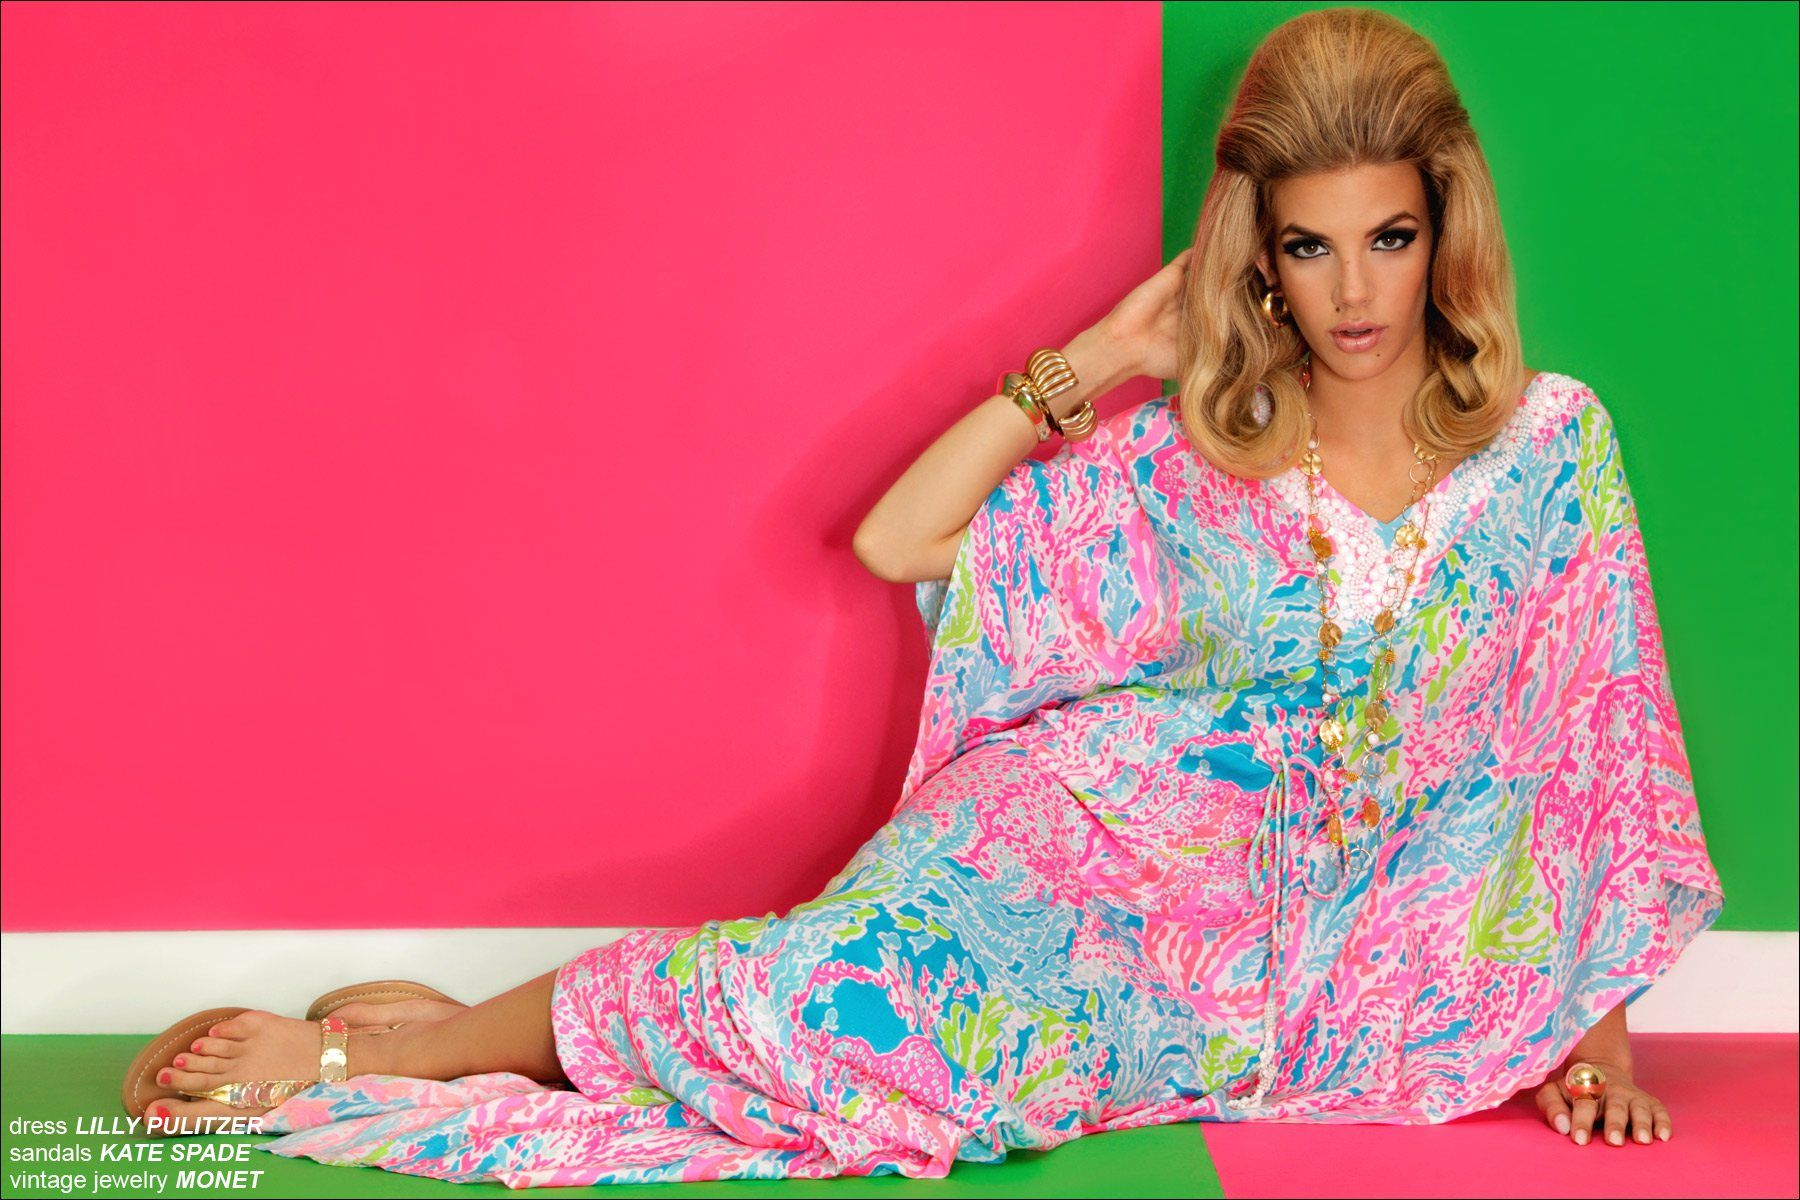 Muse Model Greta Hanza in a Lilly Pulitzer caftan, photographed by Alexander Thompson for Ponyboy Magazine.